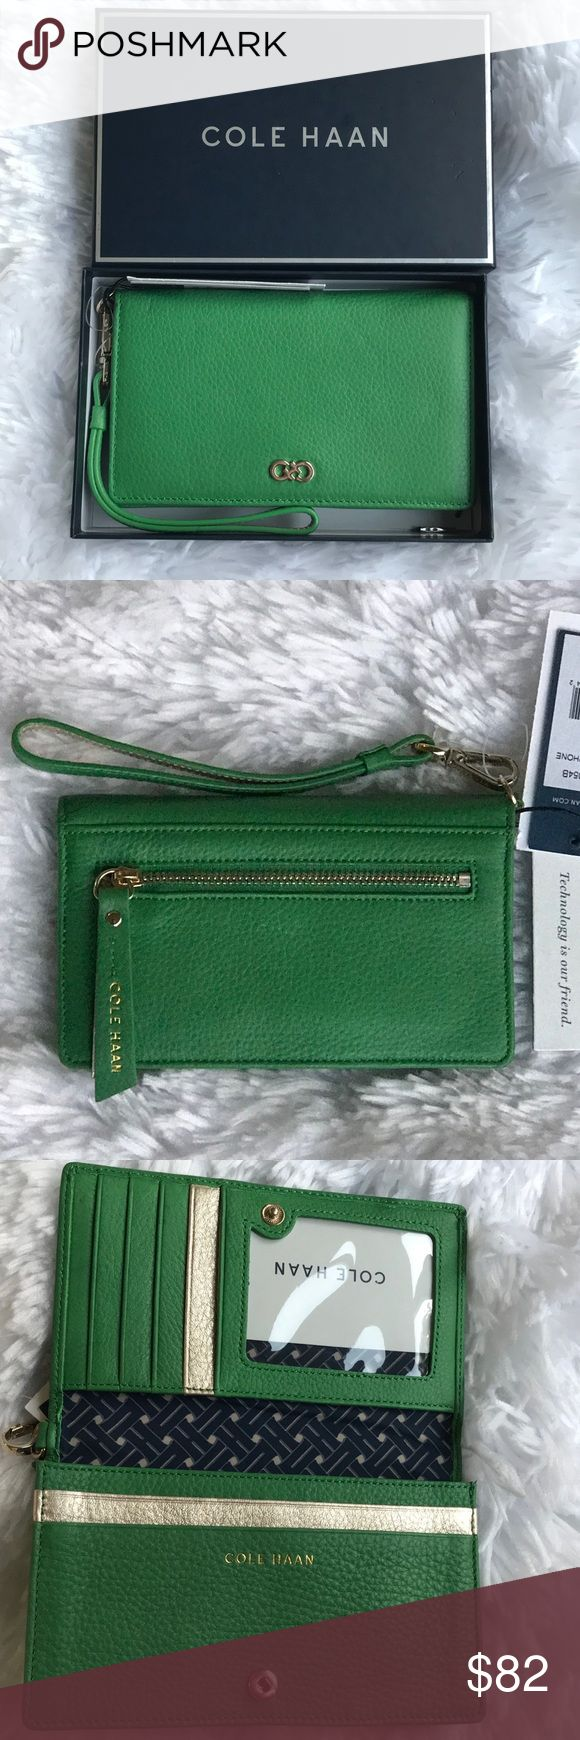 """⚡️COLE HAAN⚡️Smart Phone Wallet For iPhone 6/7 ✨NWT✨COLE HAAN Smart Phone Wallet For iPhone 6/7.(Will fit iPhone 6/7+ Plus, ONLY IF there are no cases/protective wear, and it's SOLELY just the iPhone)❣️Approximately 6"""" L x 3.5"""" W x 0.75"""" D. Color: Green/Silver/Gold """"COLE HAAN"""" embossed Logo on the back zipper and interior of wallet. Condition: NWT, with a VERY slight scuff underneath the center of back zipper(Please see last photo). Minor defect is reflected in price. Wallet includes…"""